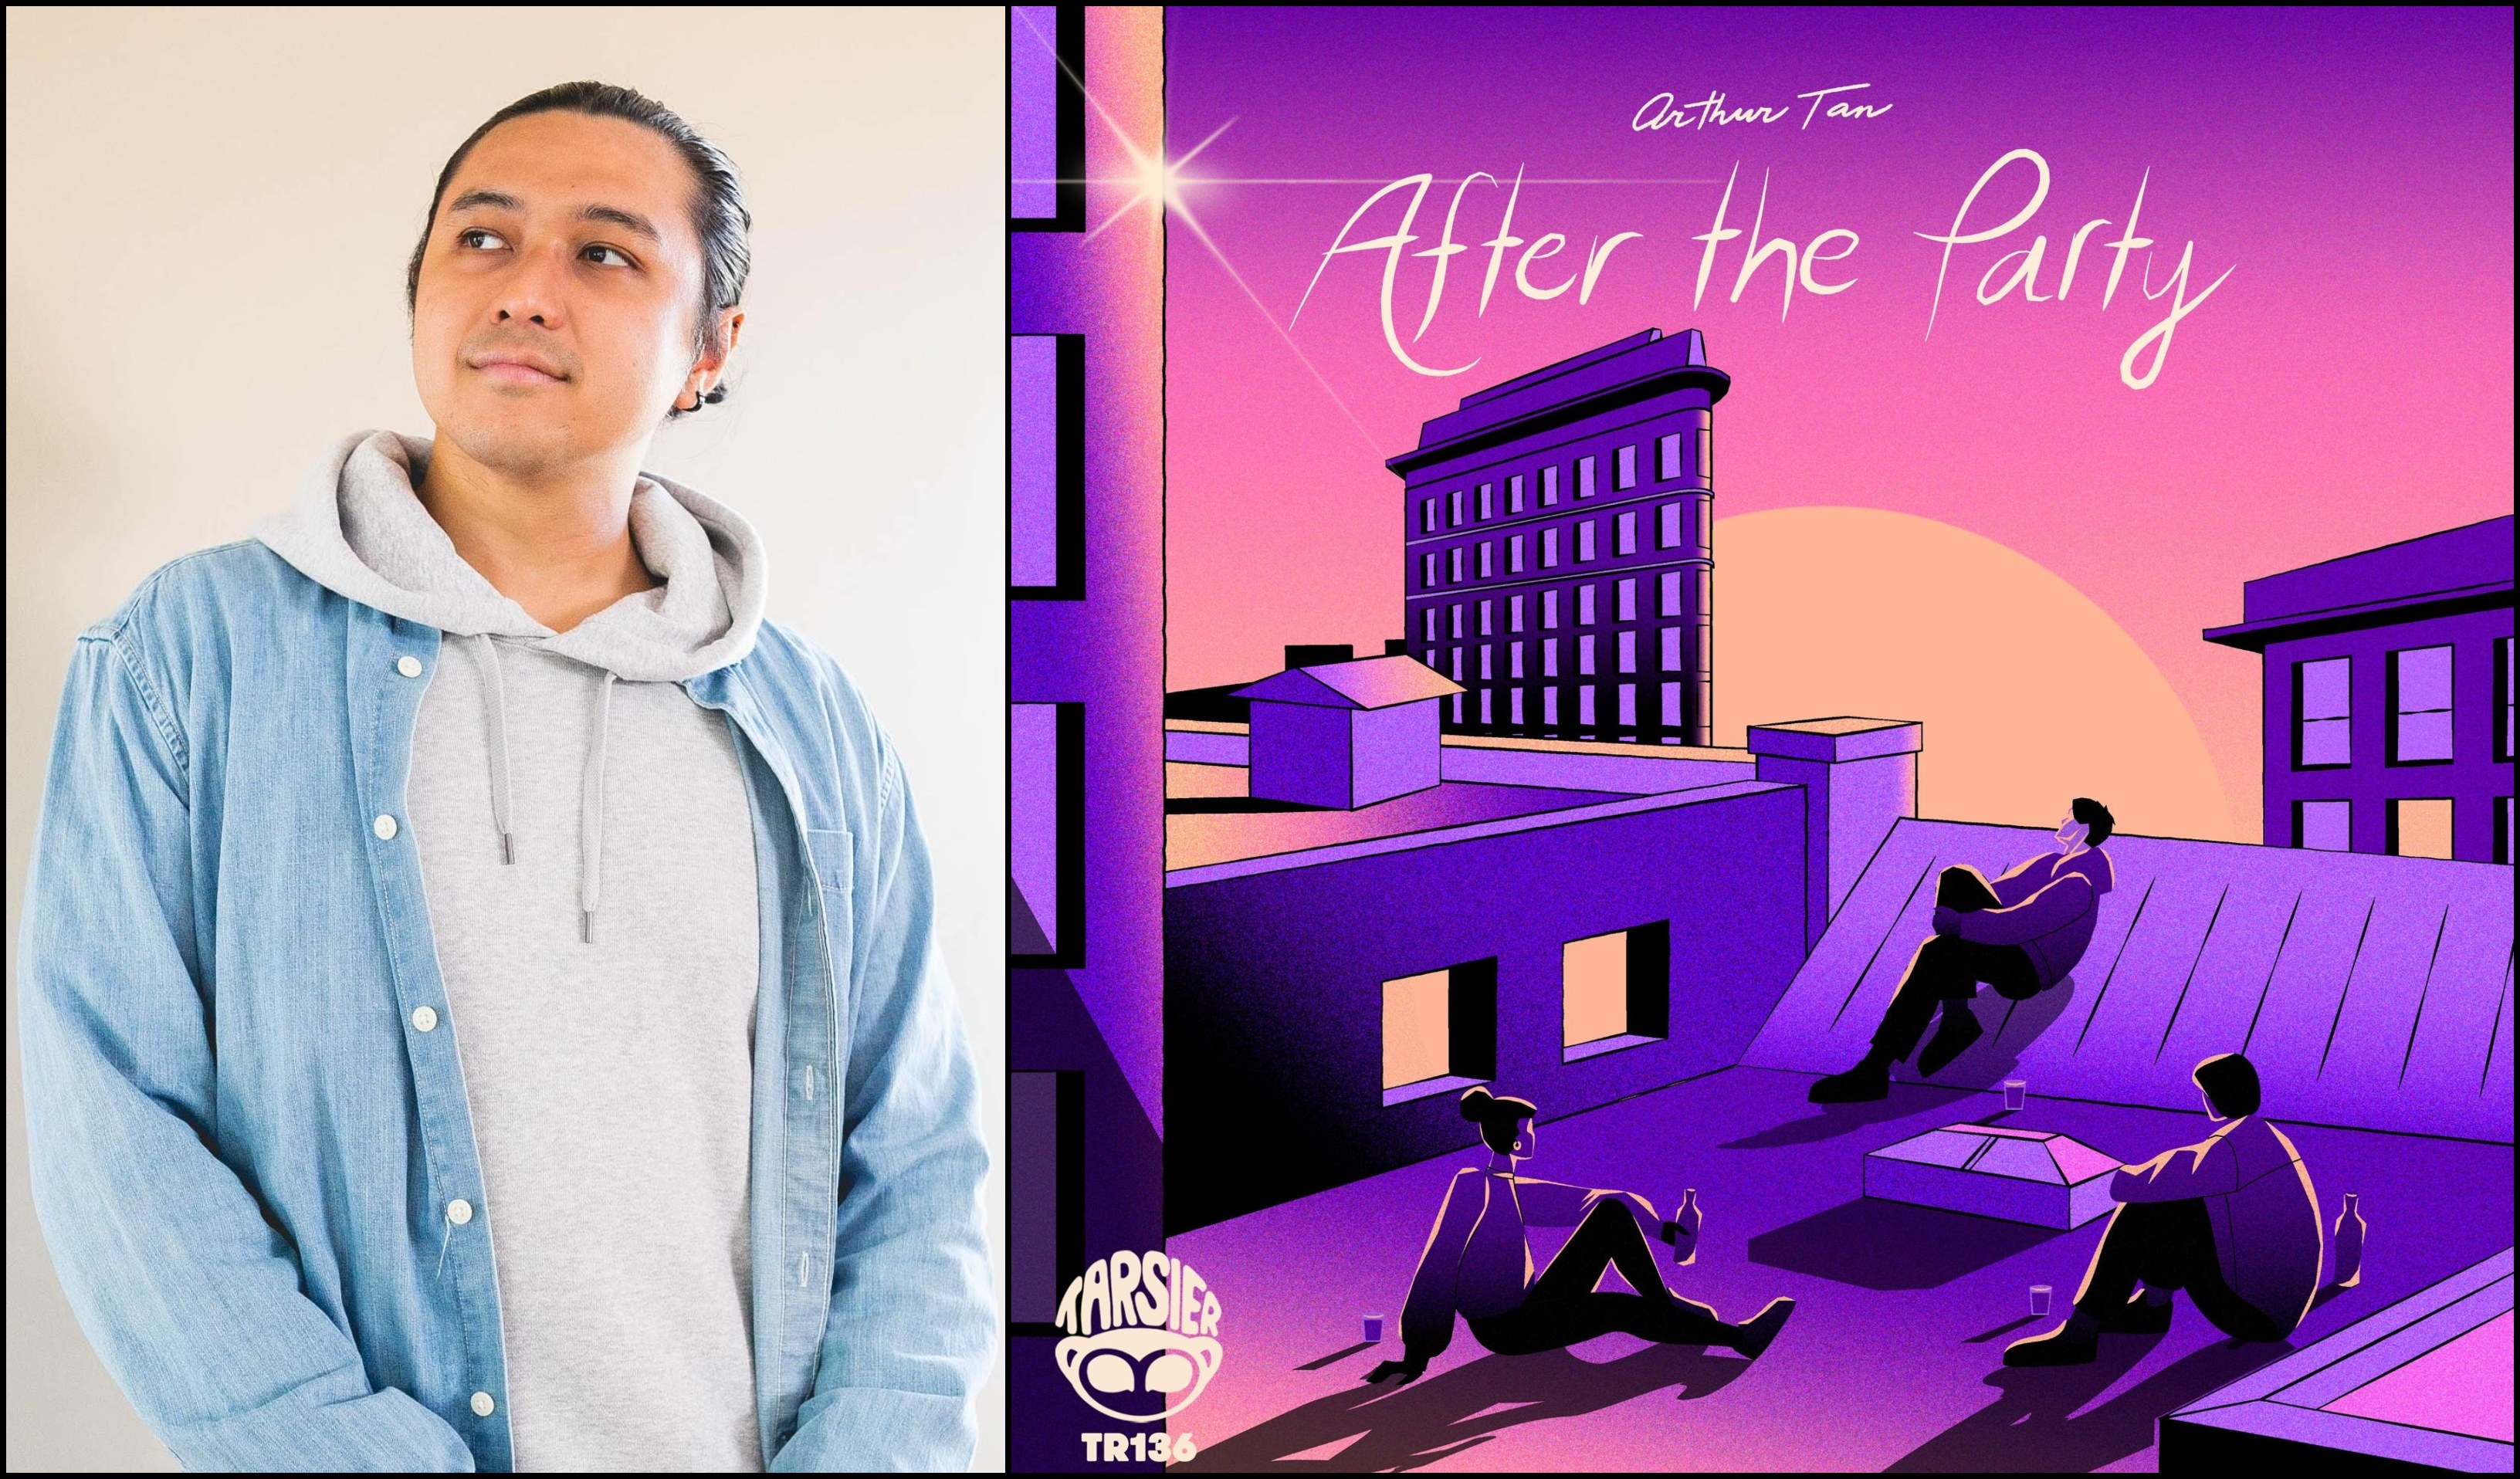 """Arthur Tan releases """"After the Party"""" EP"""